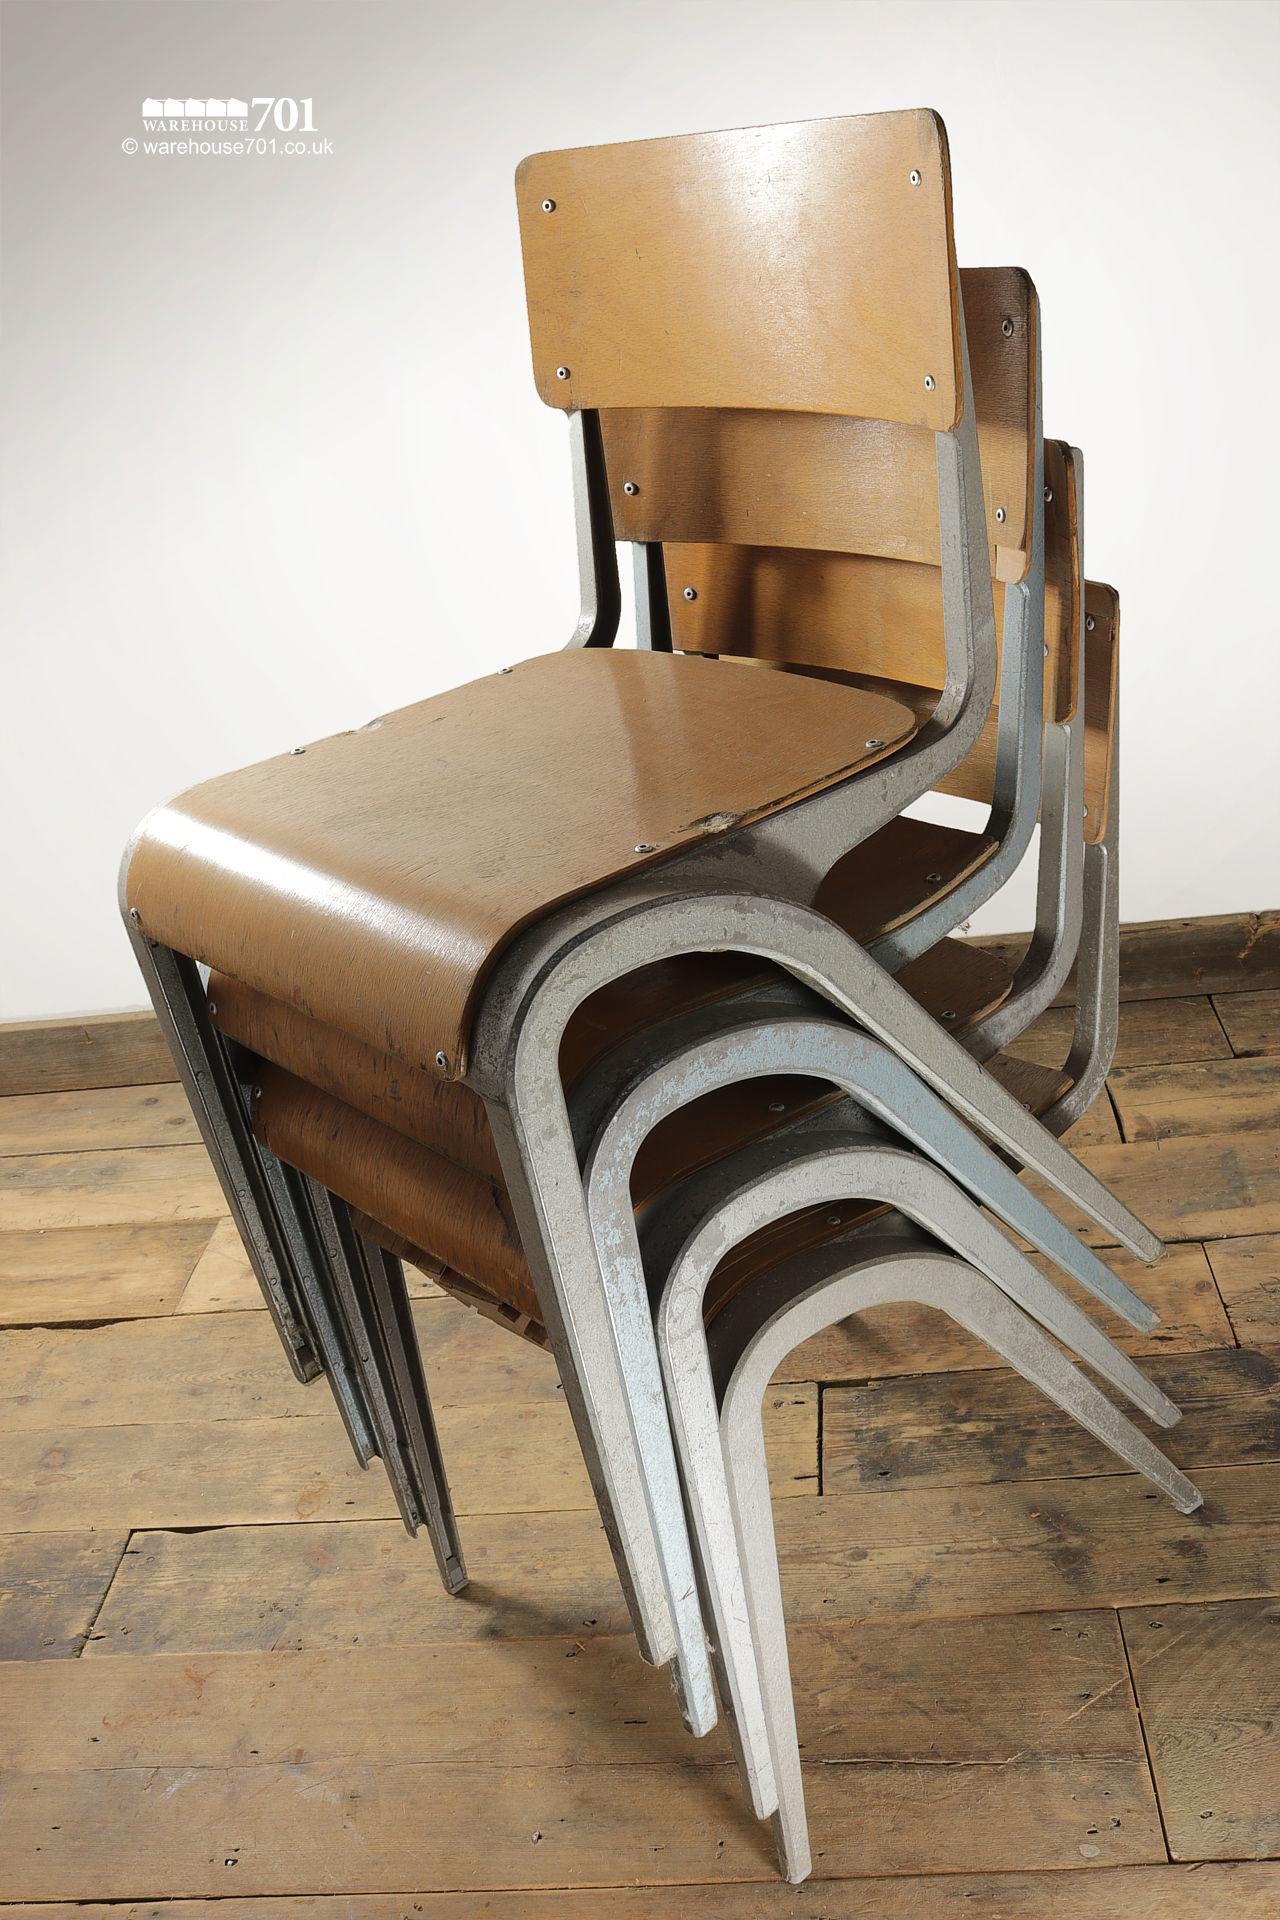 Vintage 1950s Esavian Alloy & Ply Stacking Chairs #2